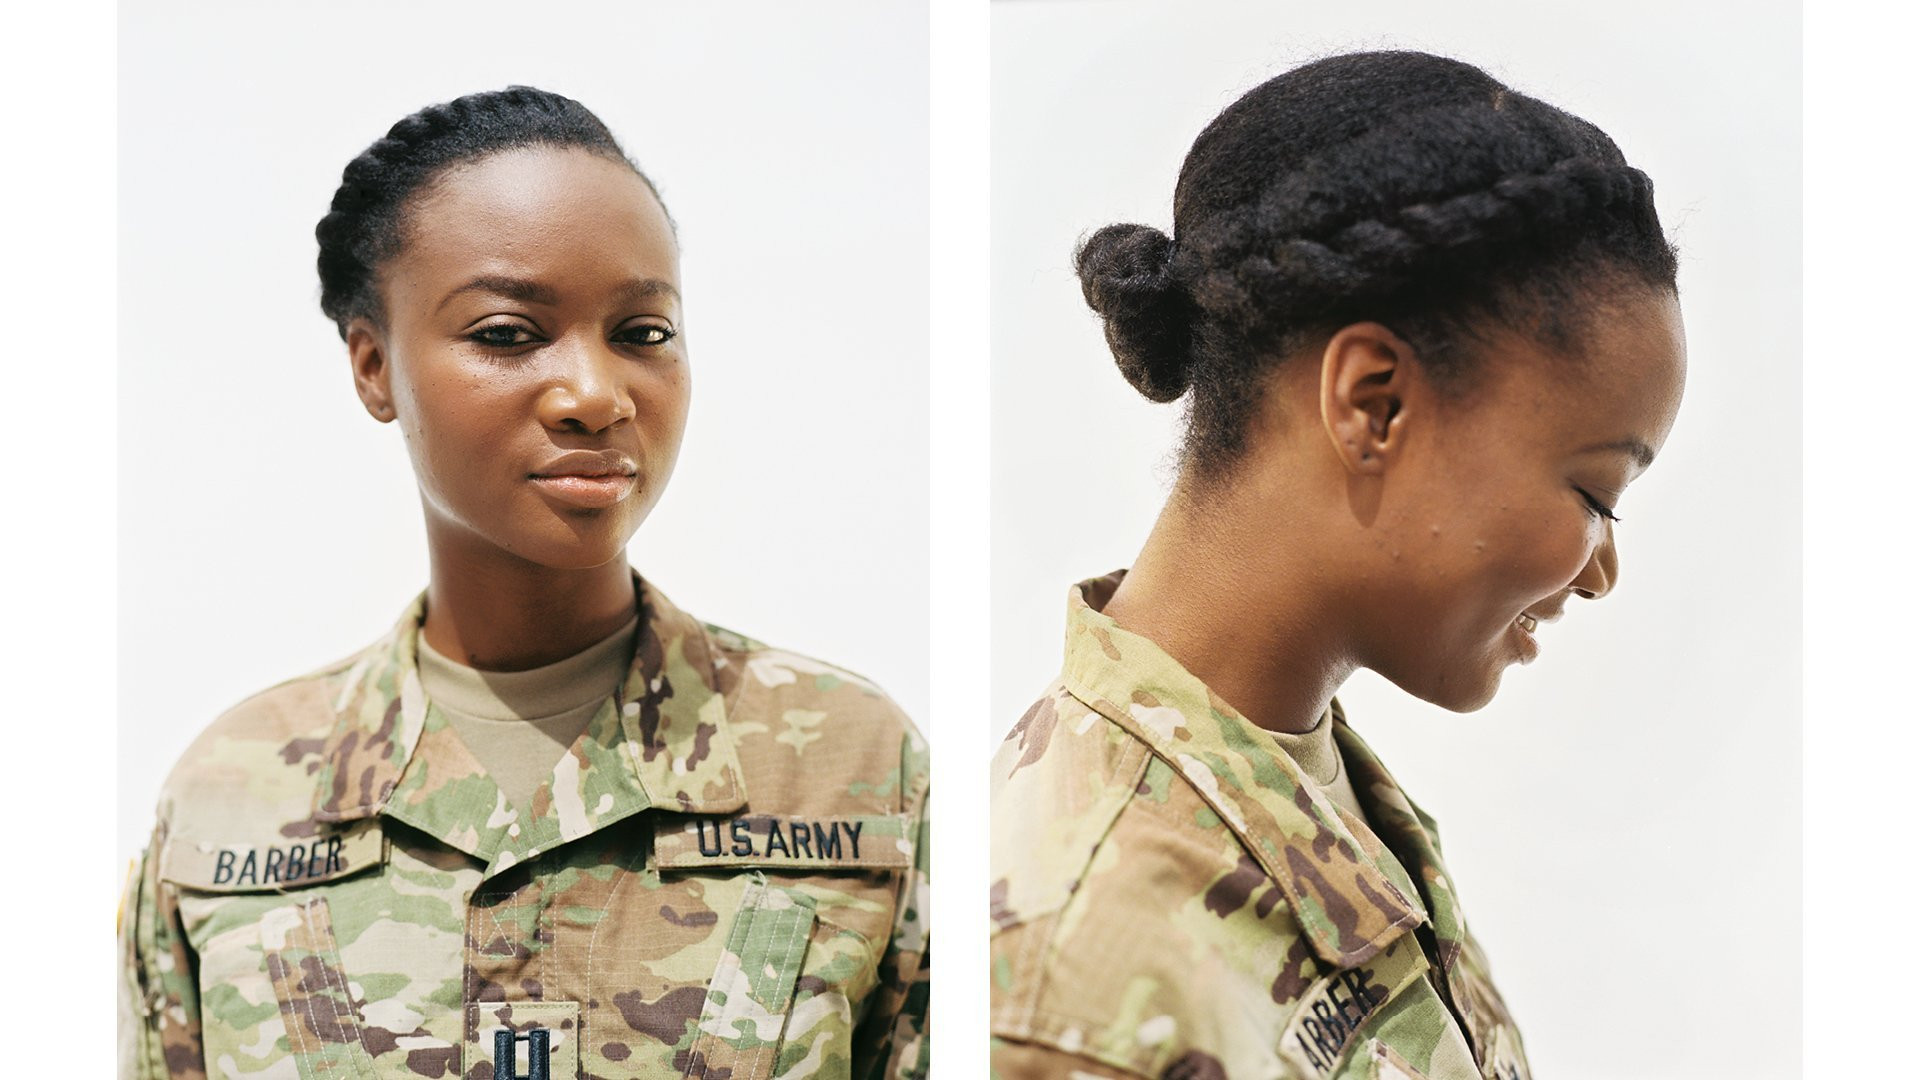 Female Authorized Hairstyles Army  military approved haircuts for women vogue profiles women